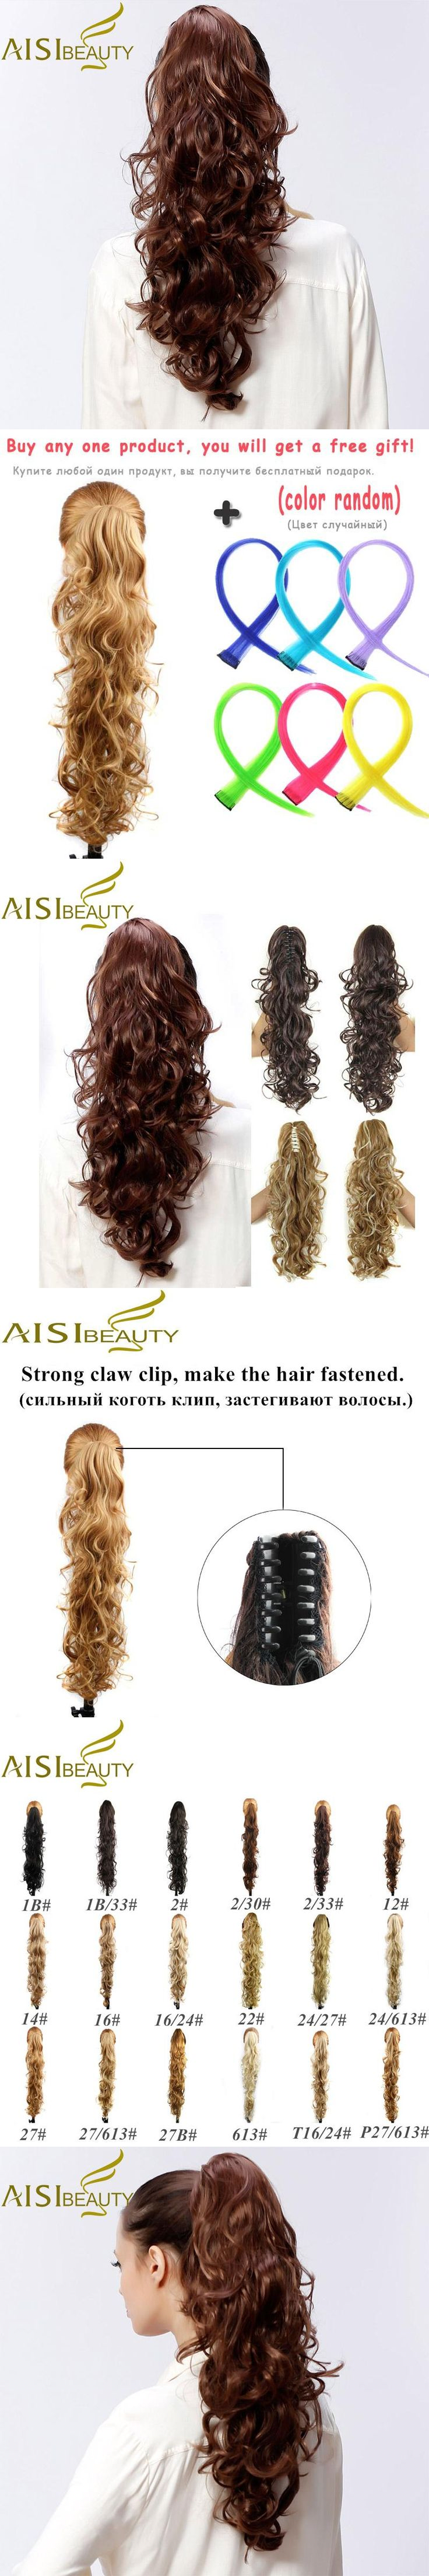 "AISI BEAUTY 29"" 200g High Temperature Fiber Hairpieces Long Wavy Synthetic Claw Clip Ponytail Hair Extensions for Women"